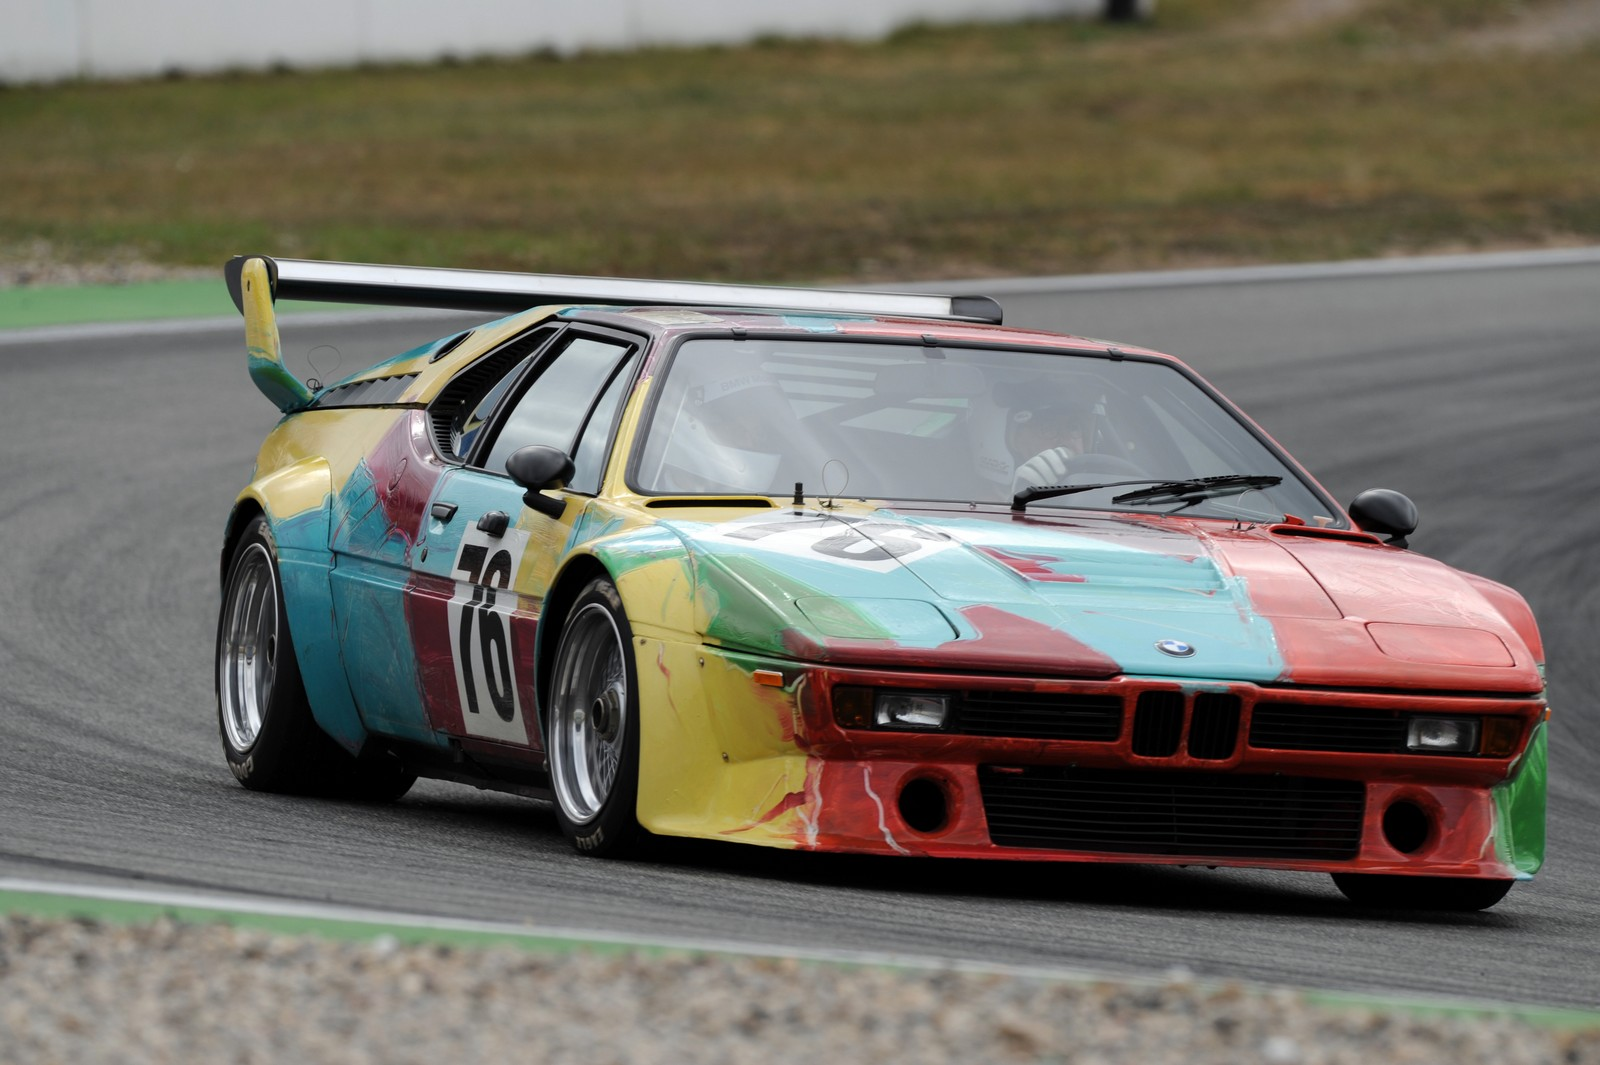 andy warhol s 1979 bmw m1 art car to be center piece at saratoga automobile museum gtspirit. Black Bedroom Furniture Sets. Home Design Ideas